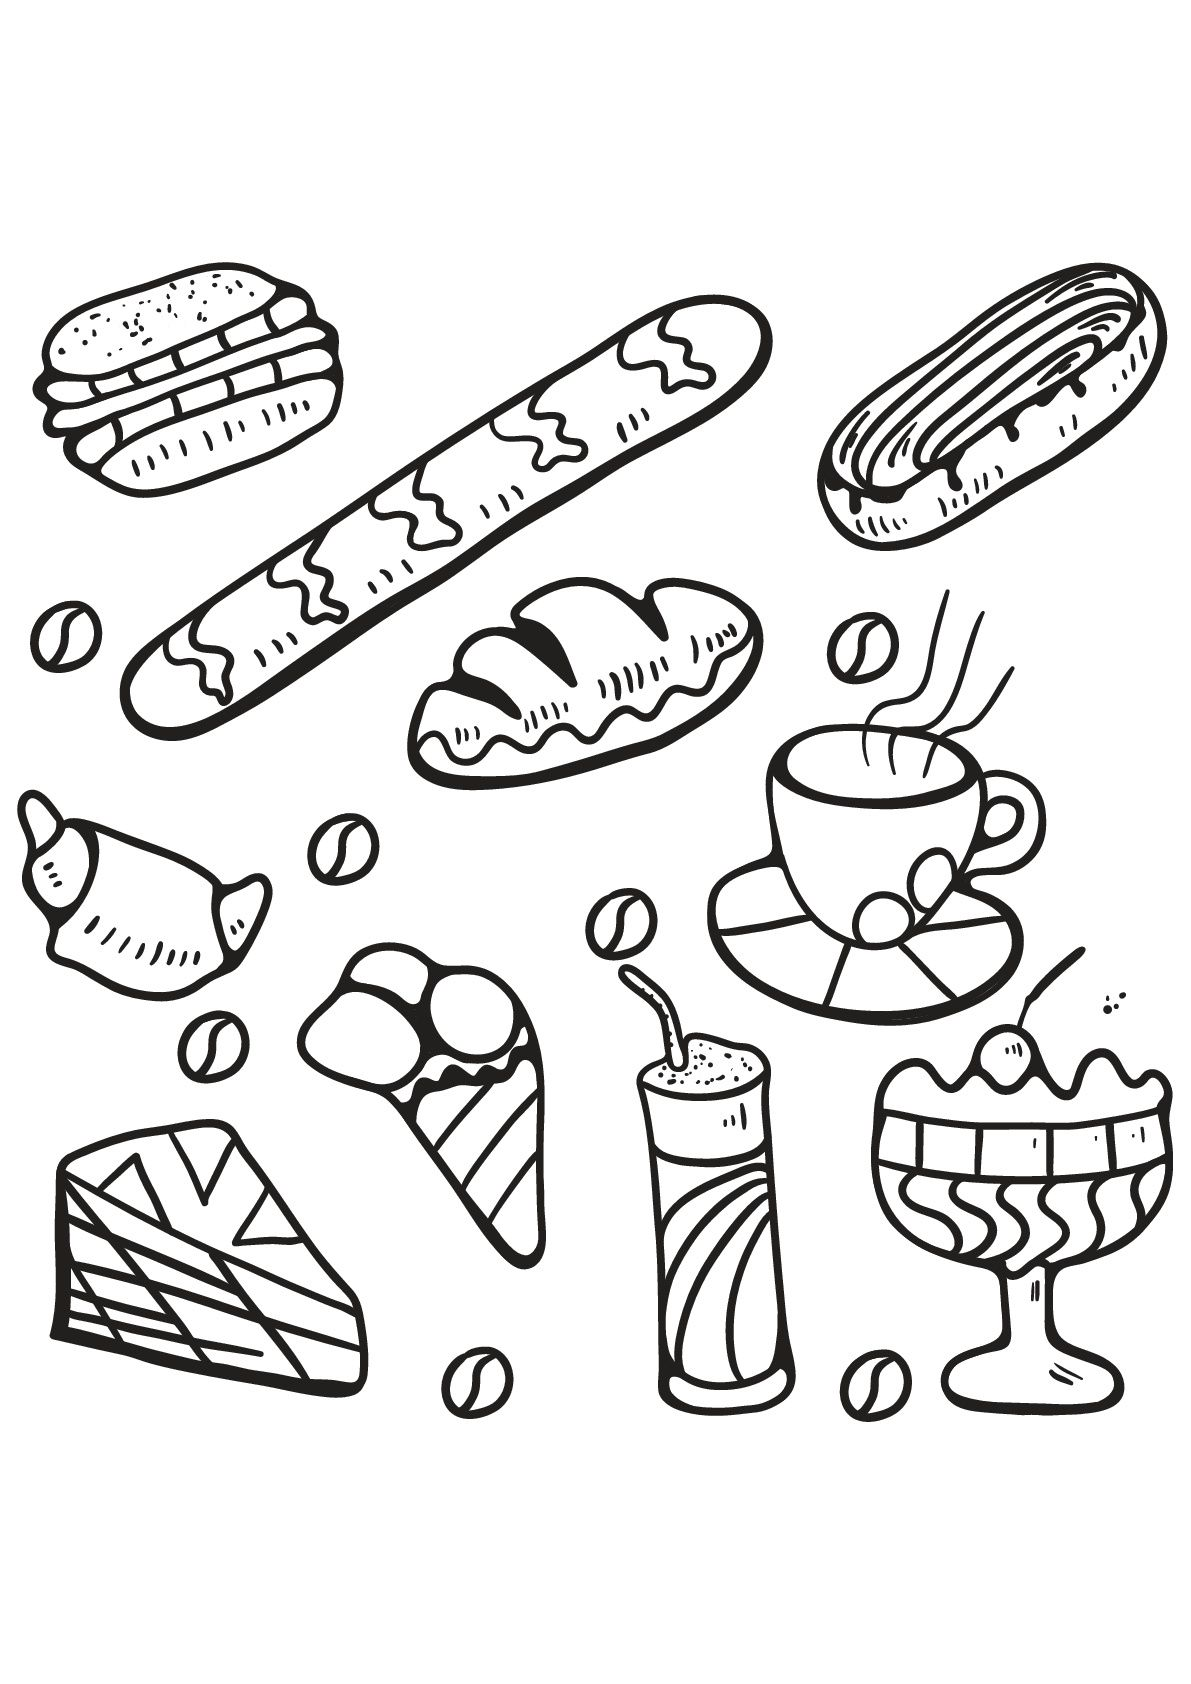 22 Awesome Image Of Food Coloring Pages Davemelillo Com Food Coloring Pages Free Kids Coloring Pages Coloring Pages Inspirational